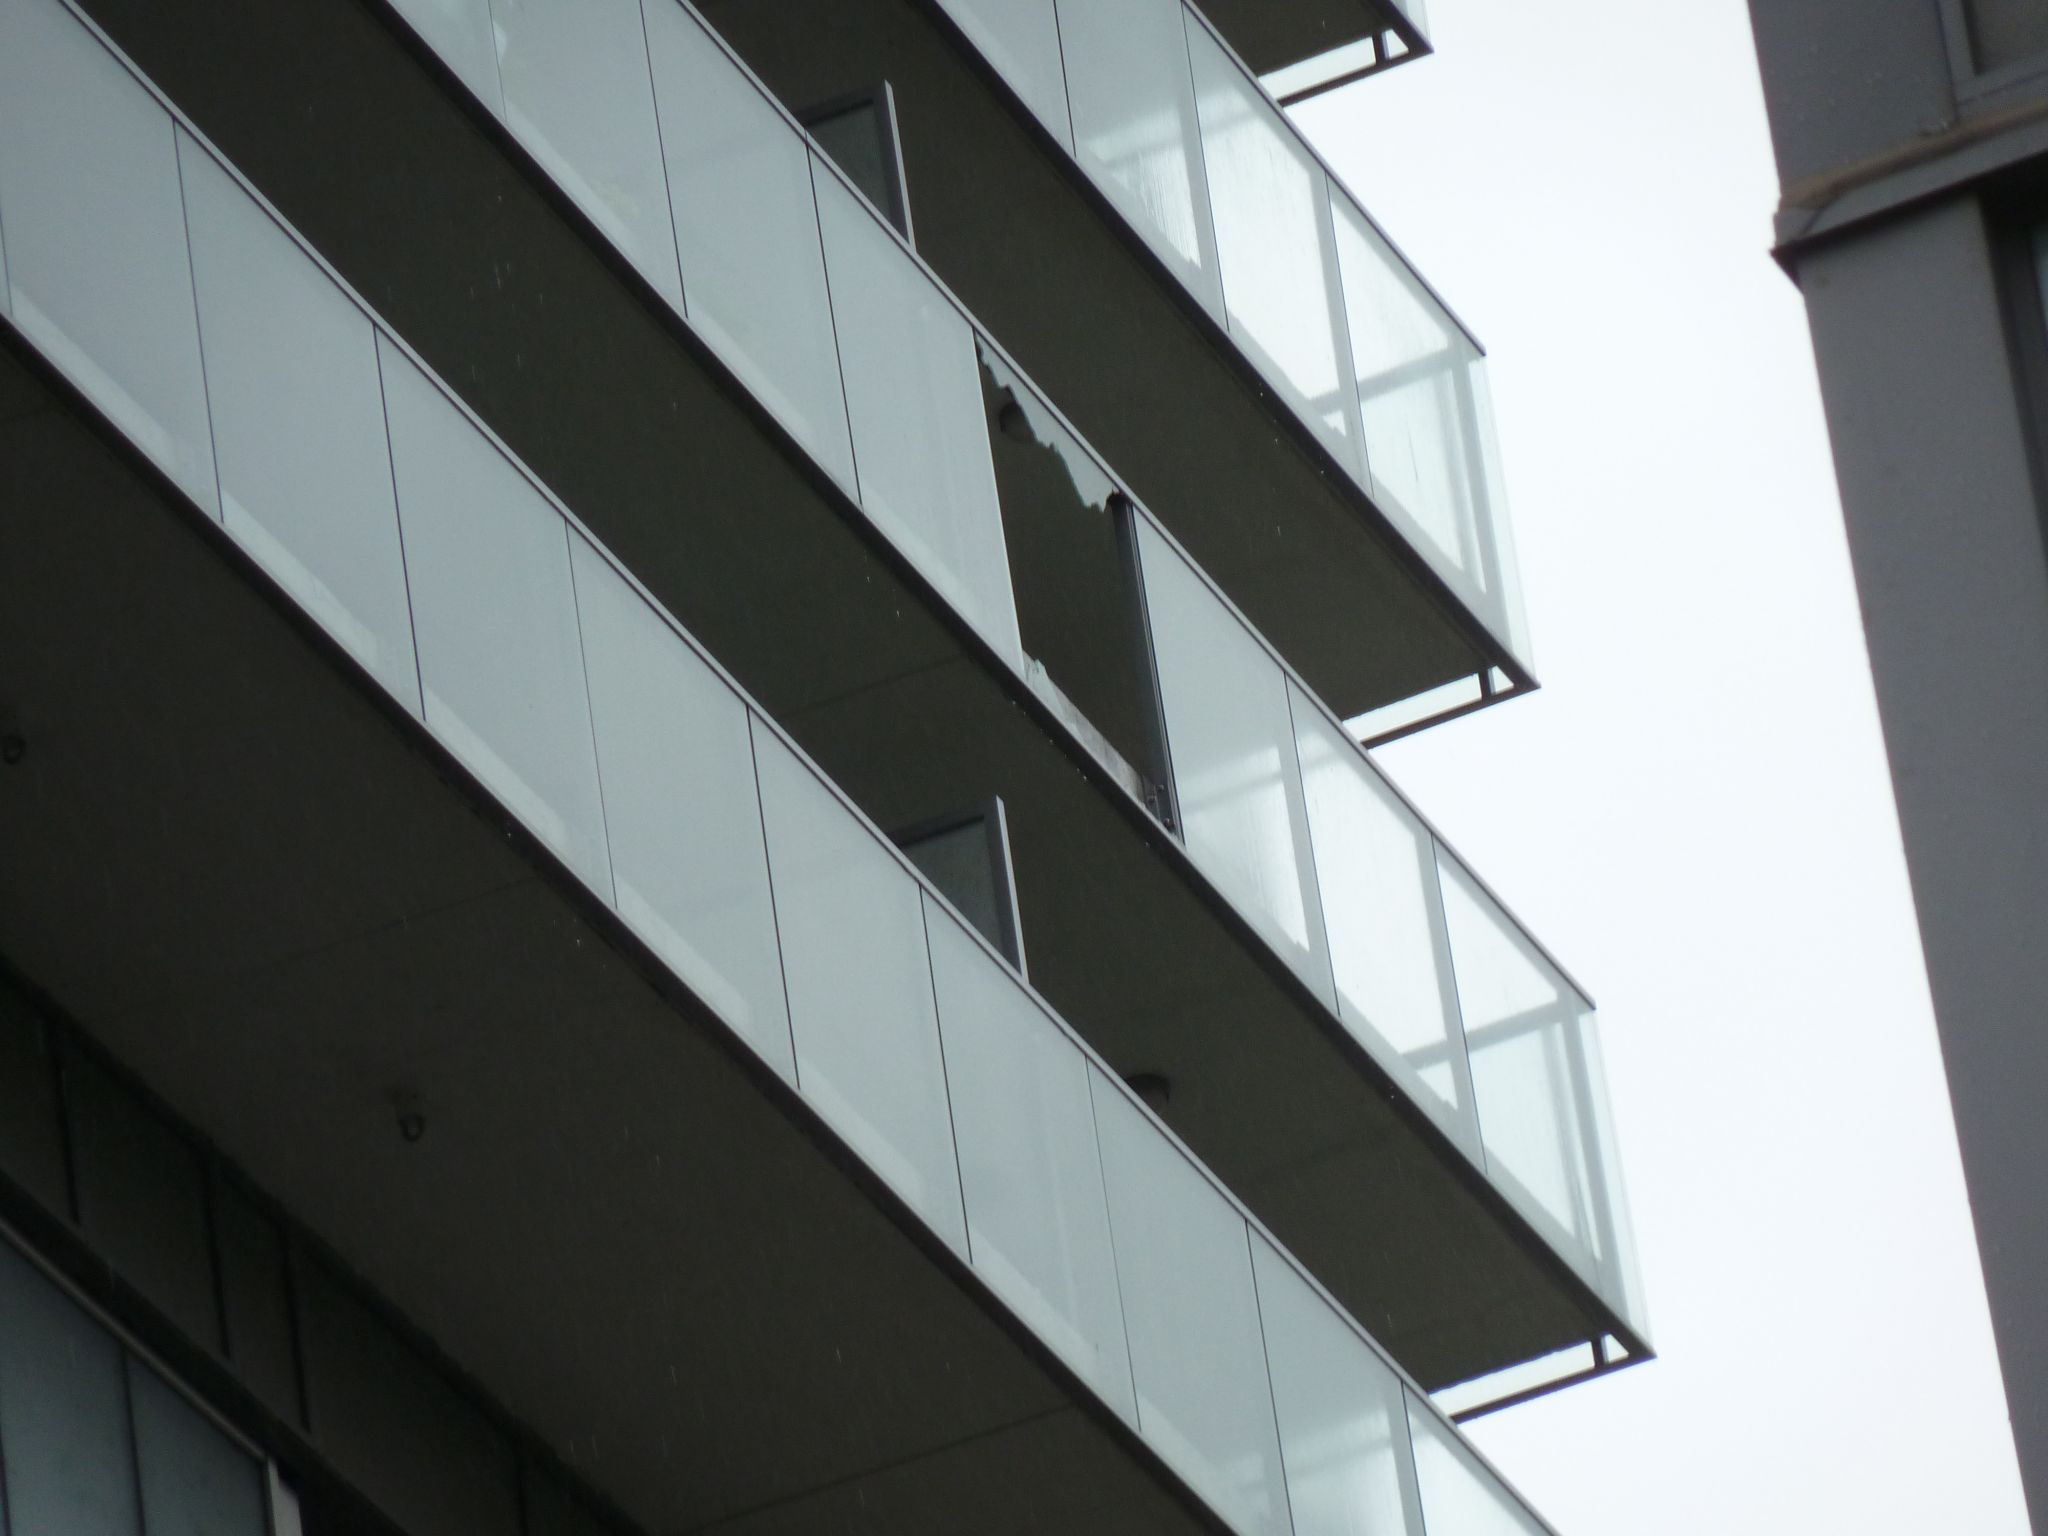 An example of spontaneous glass breakage on a balcony.